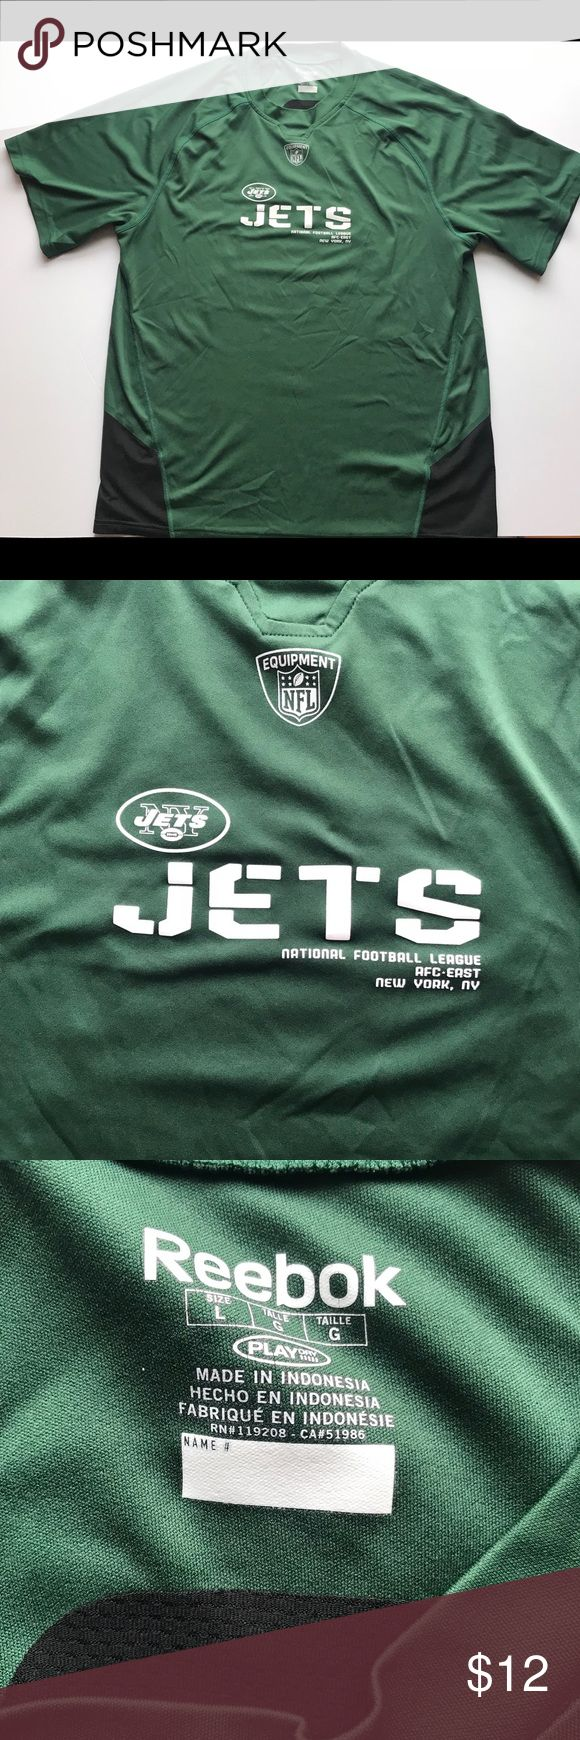 Reebok New York Jets NFL T-Shirt Item is in great condition and ready for immediate use. Let me know if you have any questions and I'm open to reasonable offers! Reebok Shirts Tees - Short Sleeve